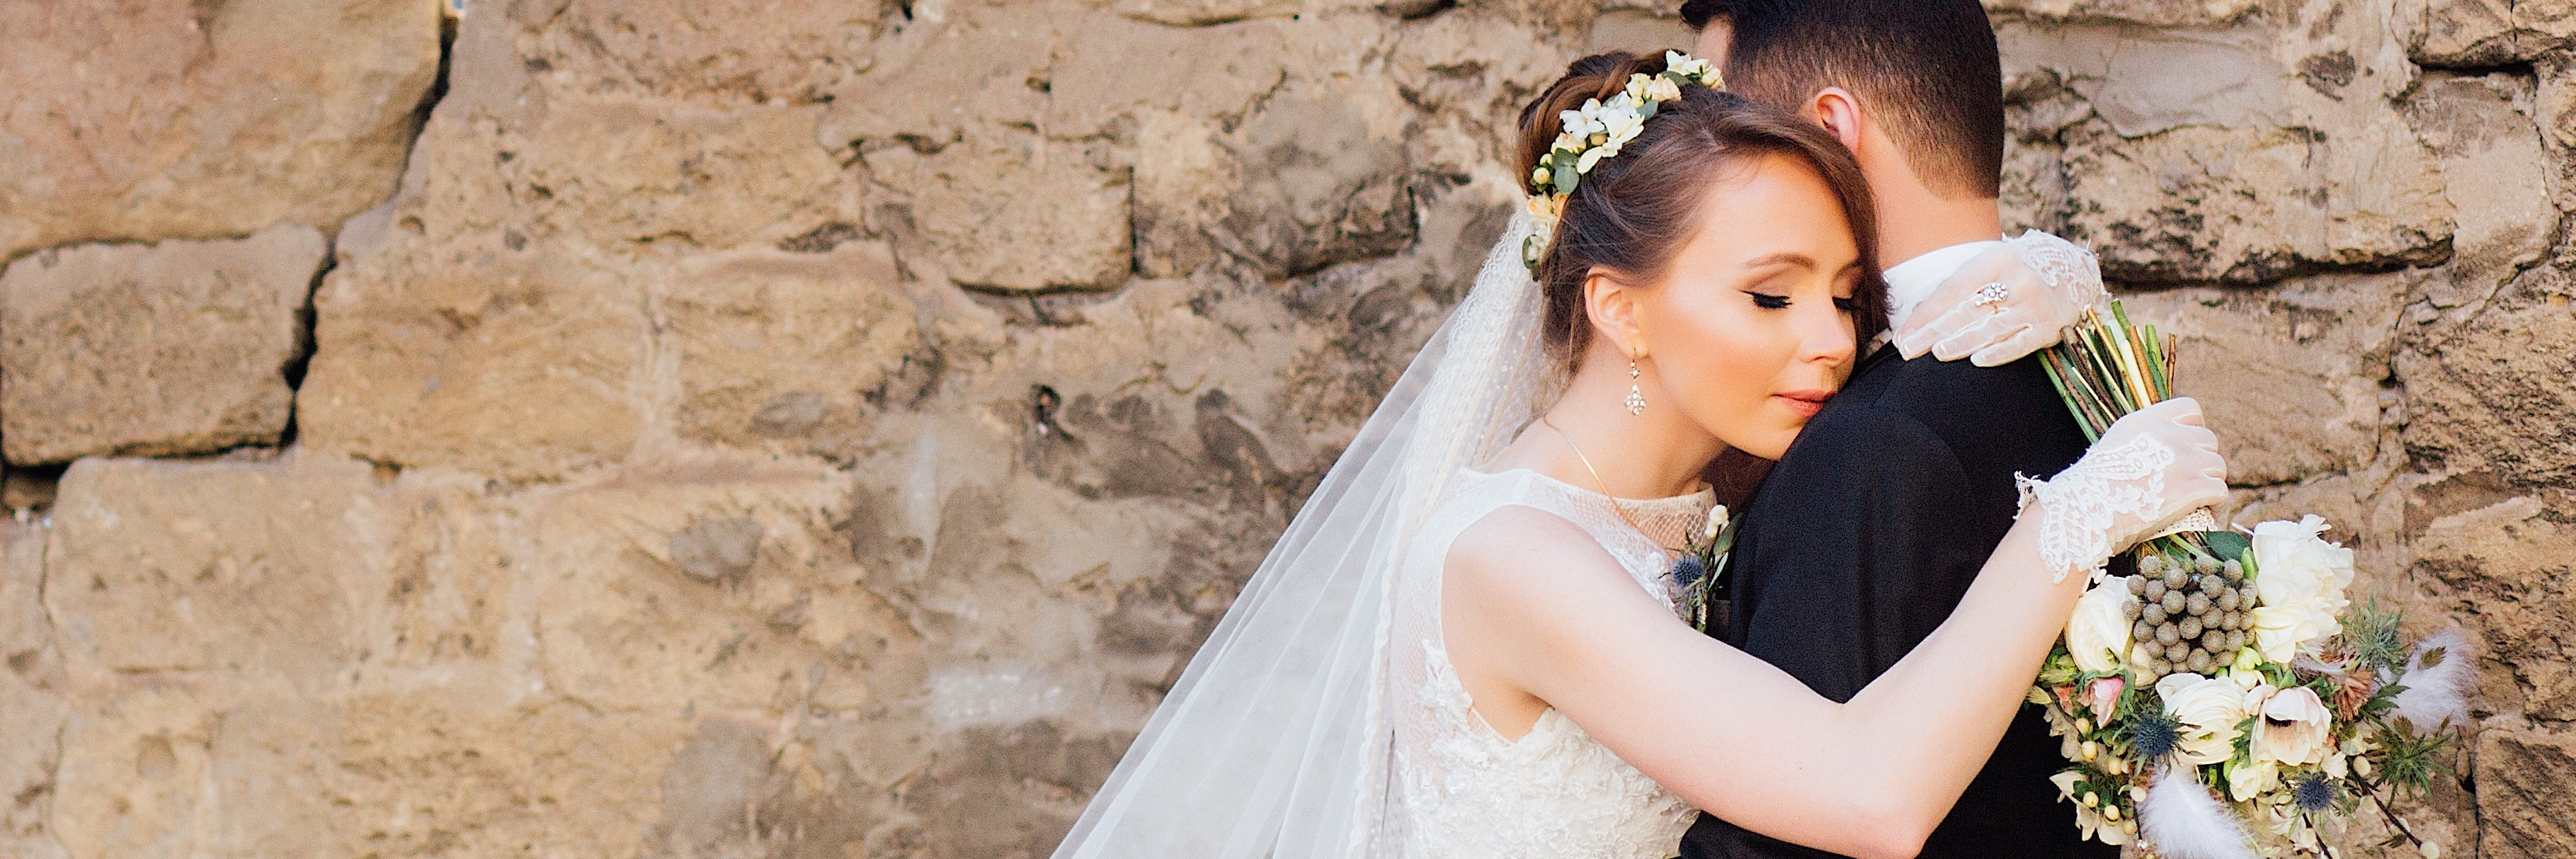 newly wed husband and wife embracing before stone wall